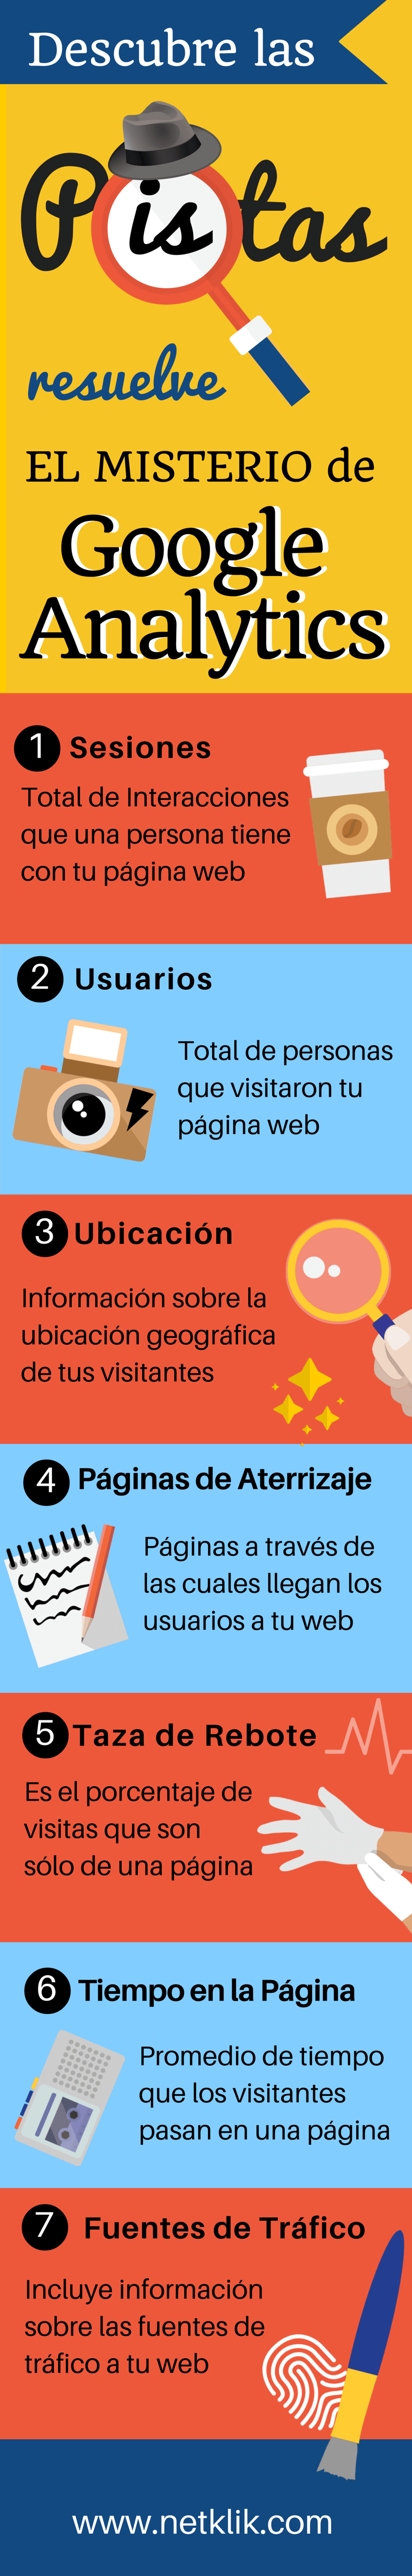 Estrategias De Marketing Digital Informe De Contacto